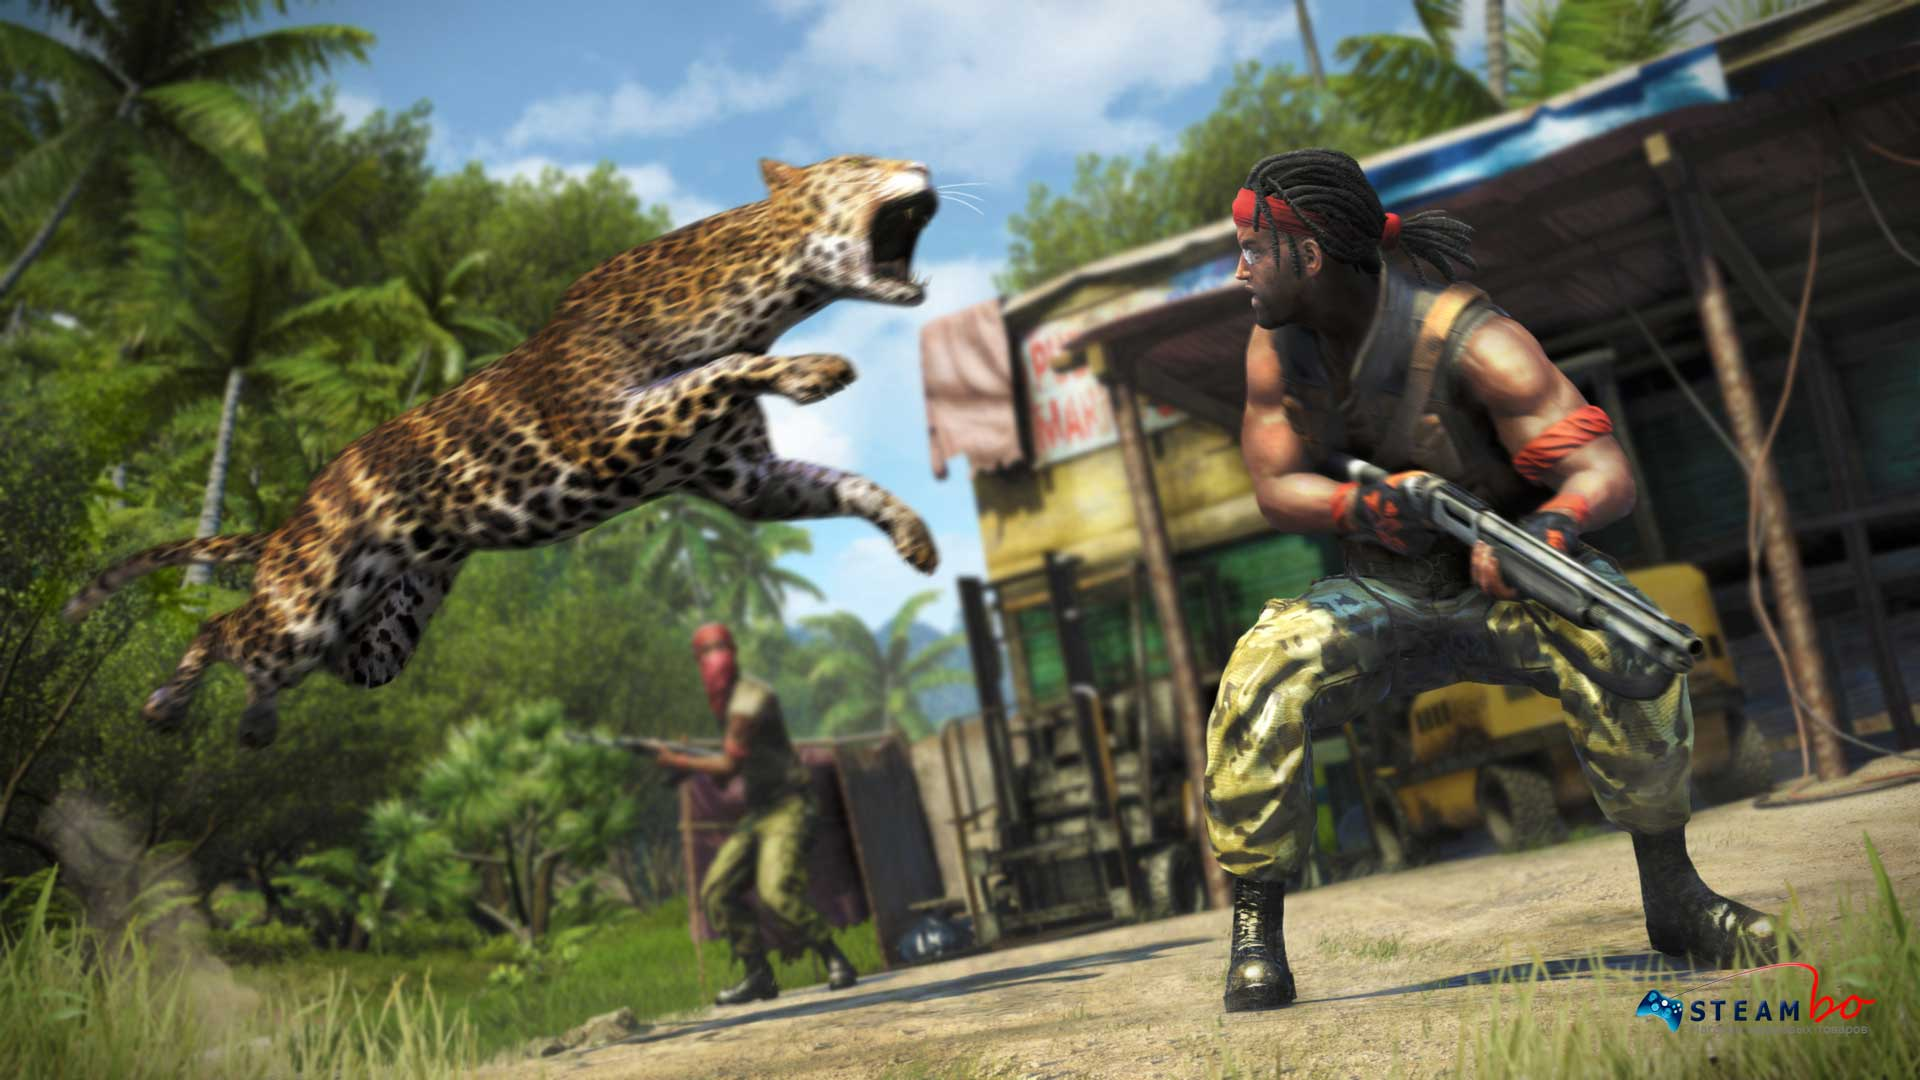 Far Cry 3 Region Free (Steam Gift / Key)